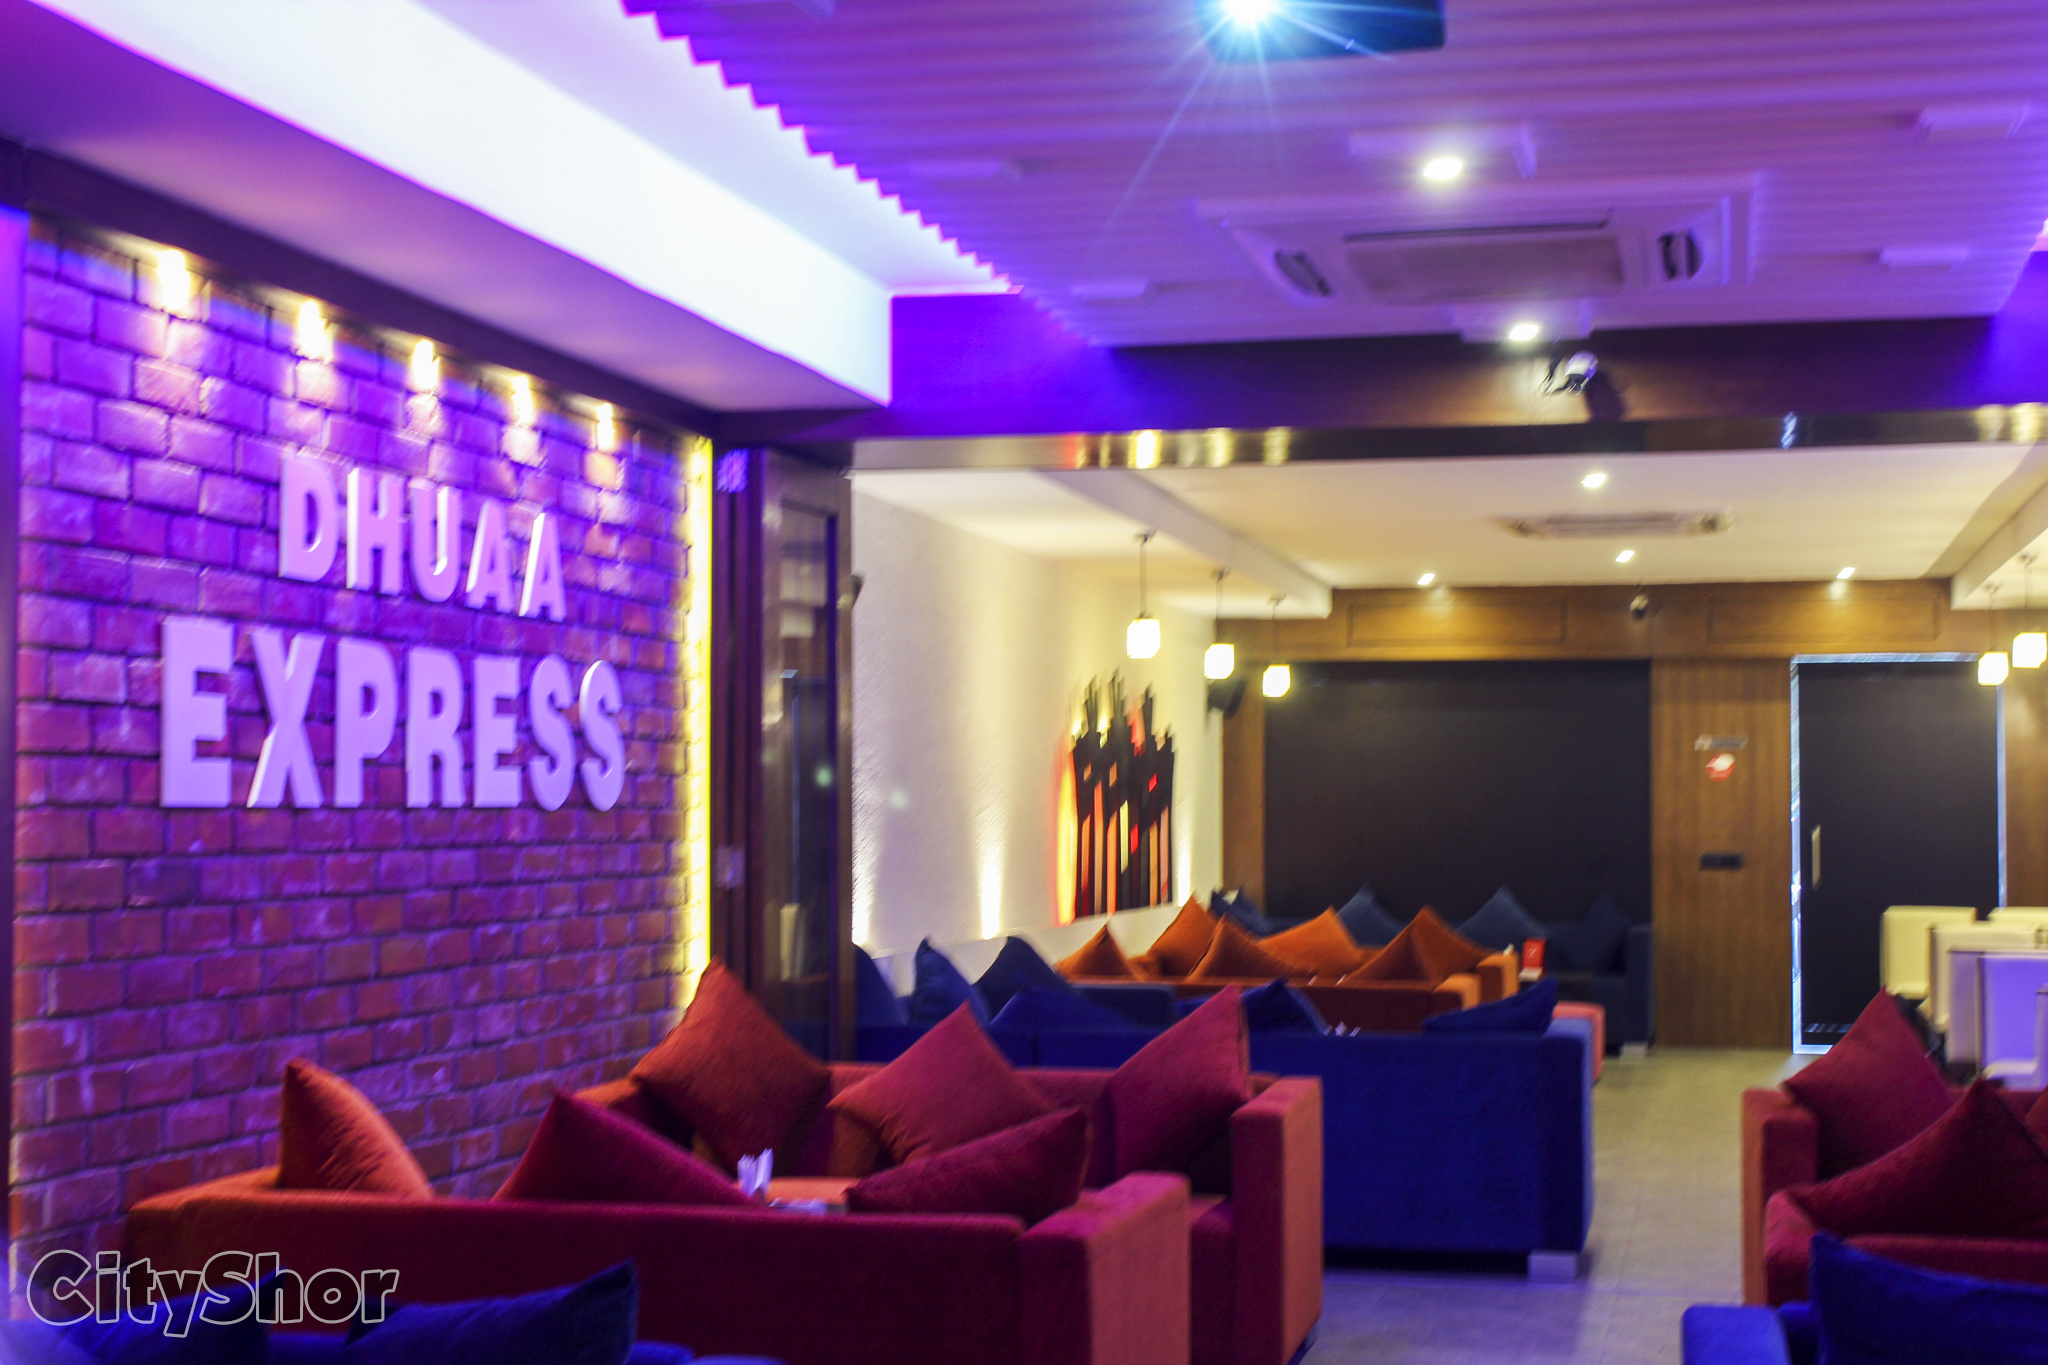 Dhuaa Express - The best for this weekend!